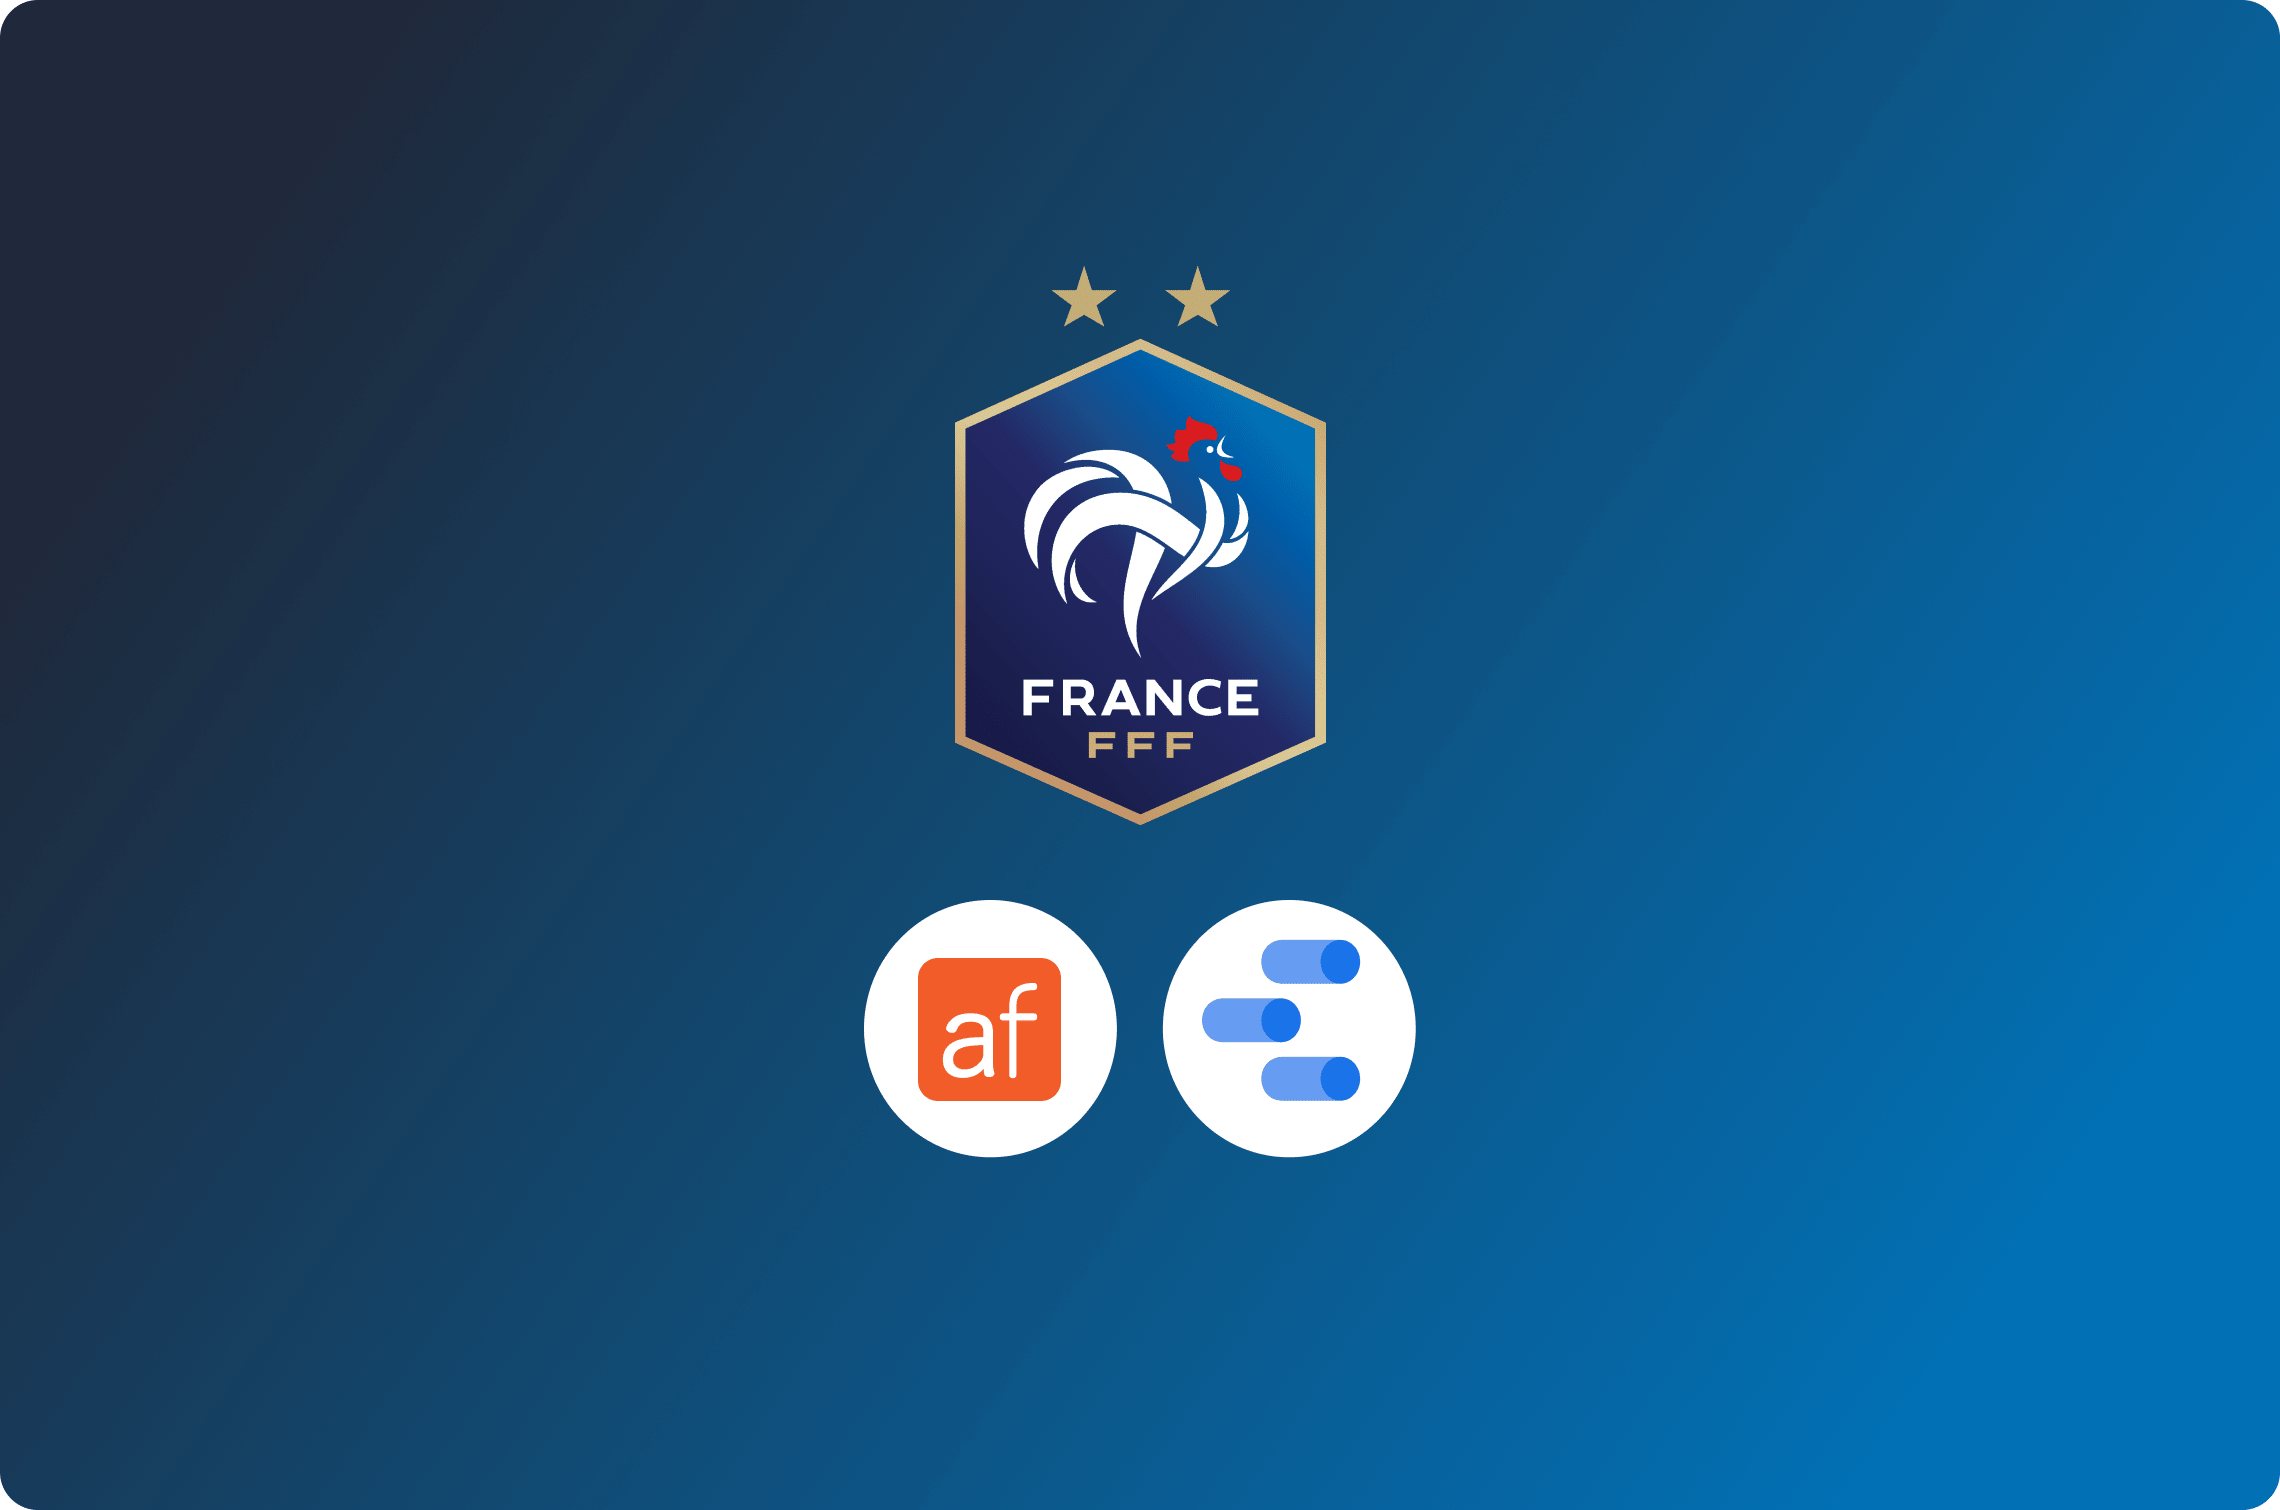 How French Football Federation Views Appfigures Data